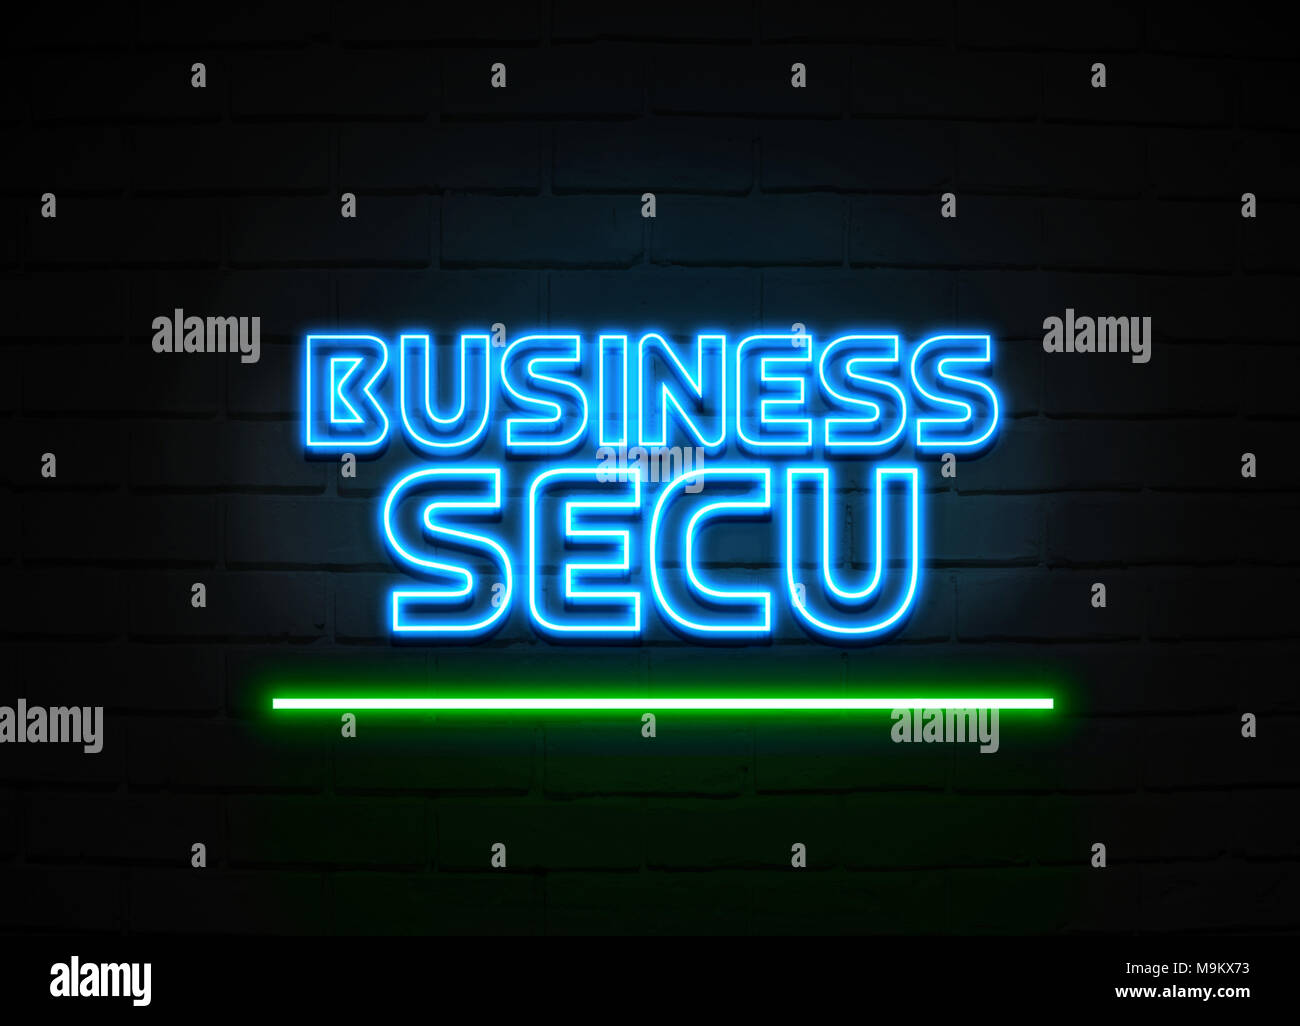 Business Secu neon sign - Glowing Neon Sign on brickwall wall - 3D rendered royalty free stock illustration. - Stock Image